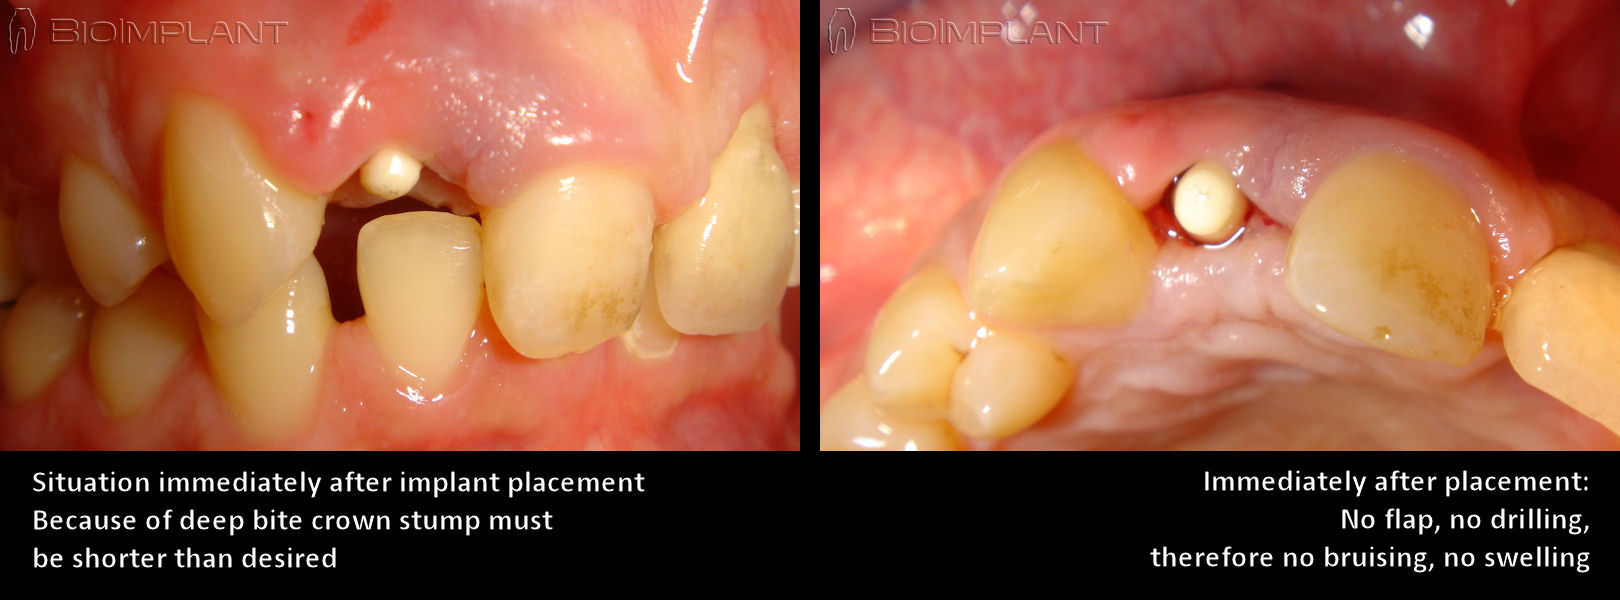 anatomic_dental_implant_ideal_in_difficult_situations